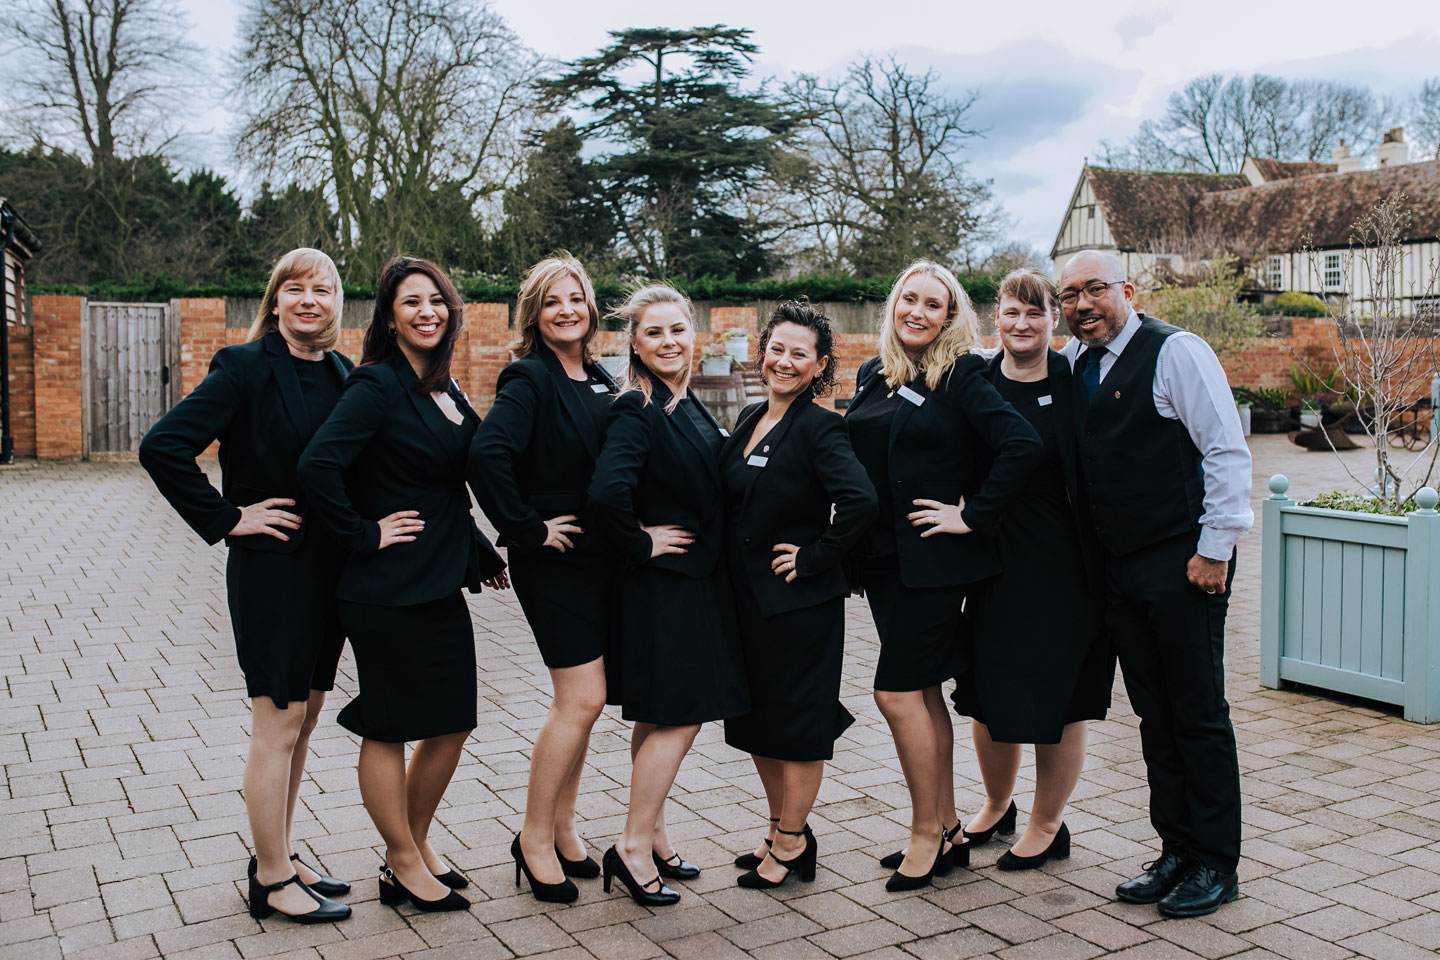 The fantastic wedding team at Bassmead Manor Barns